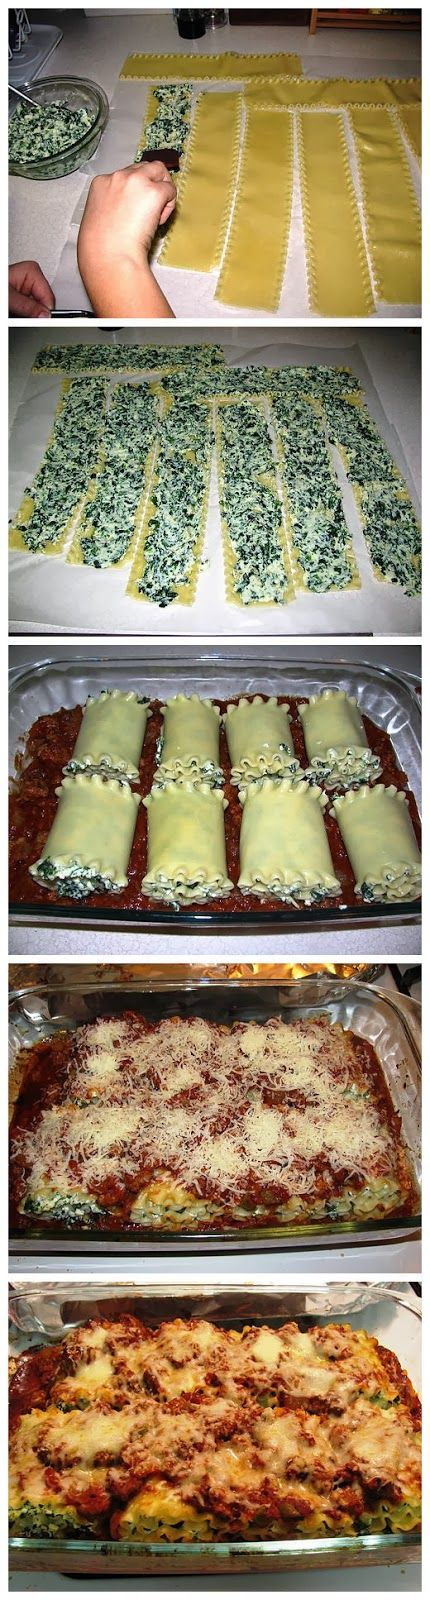 Healthy Turkey and Spinach Lasagna Rolls.. I tested these this past week using Double Duty ground italian turkey sausage. Home Run! To appease the picky eaters my meal plan subscribers feed, I revised the recipe a bit, squeezing spinach dry and actually blending with the ricotta in the blender, so they don't see chunks of spinach.